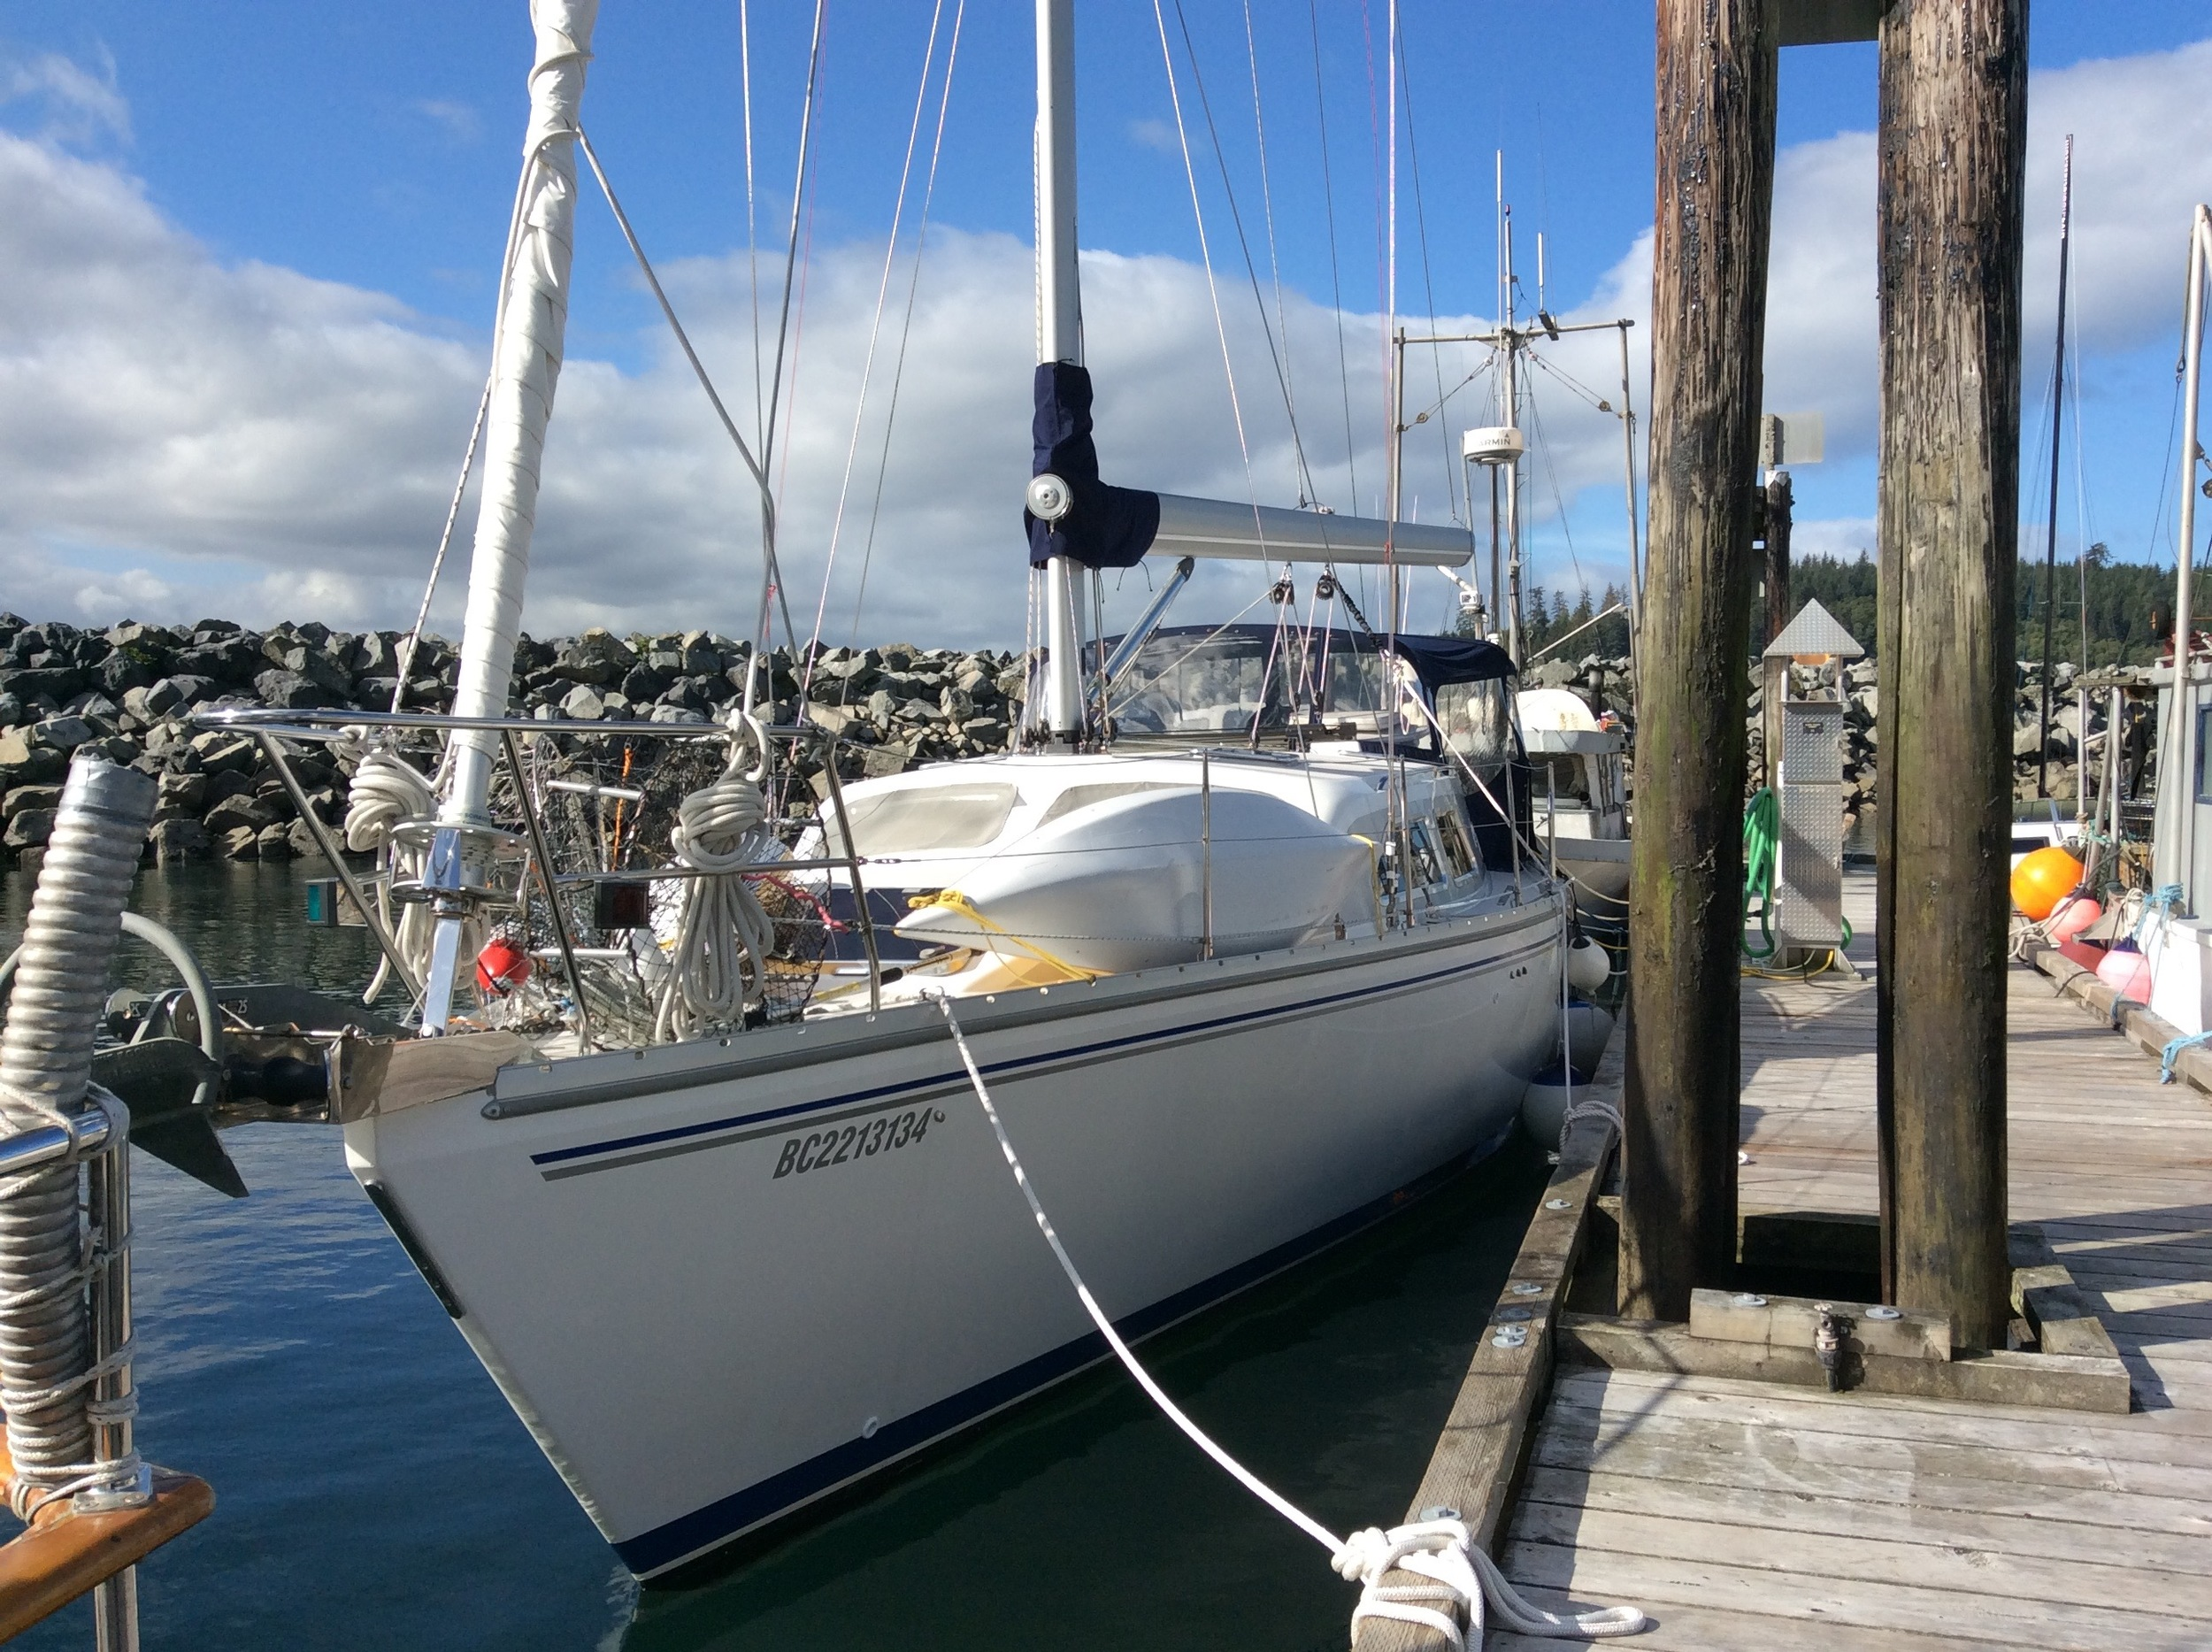 Judy's 45' Catalina Morgan - Alert Bay